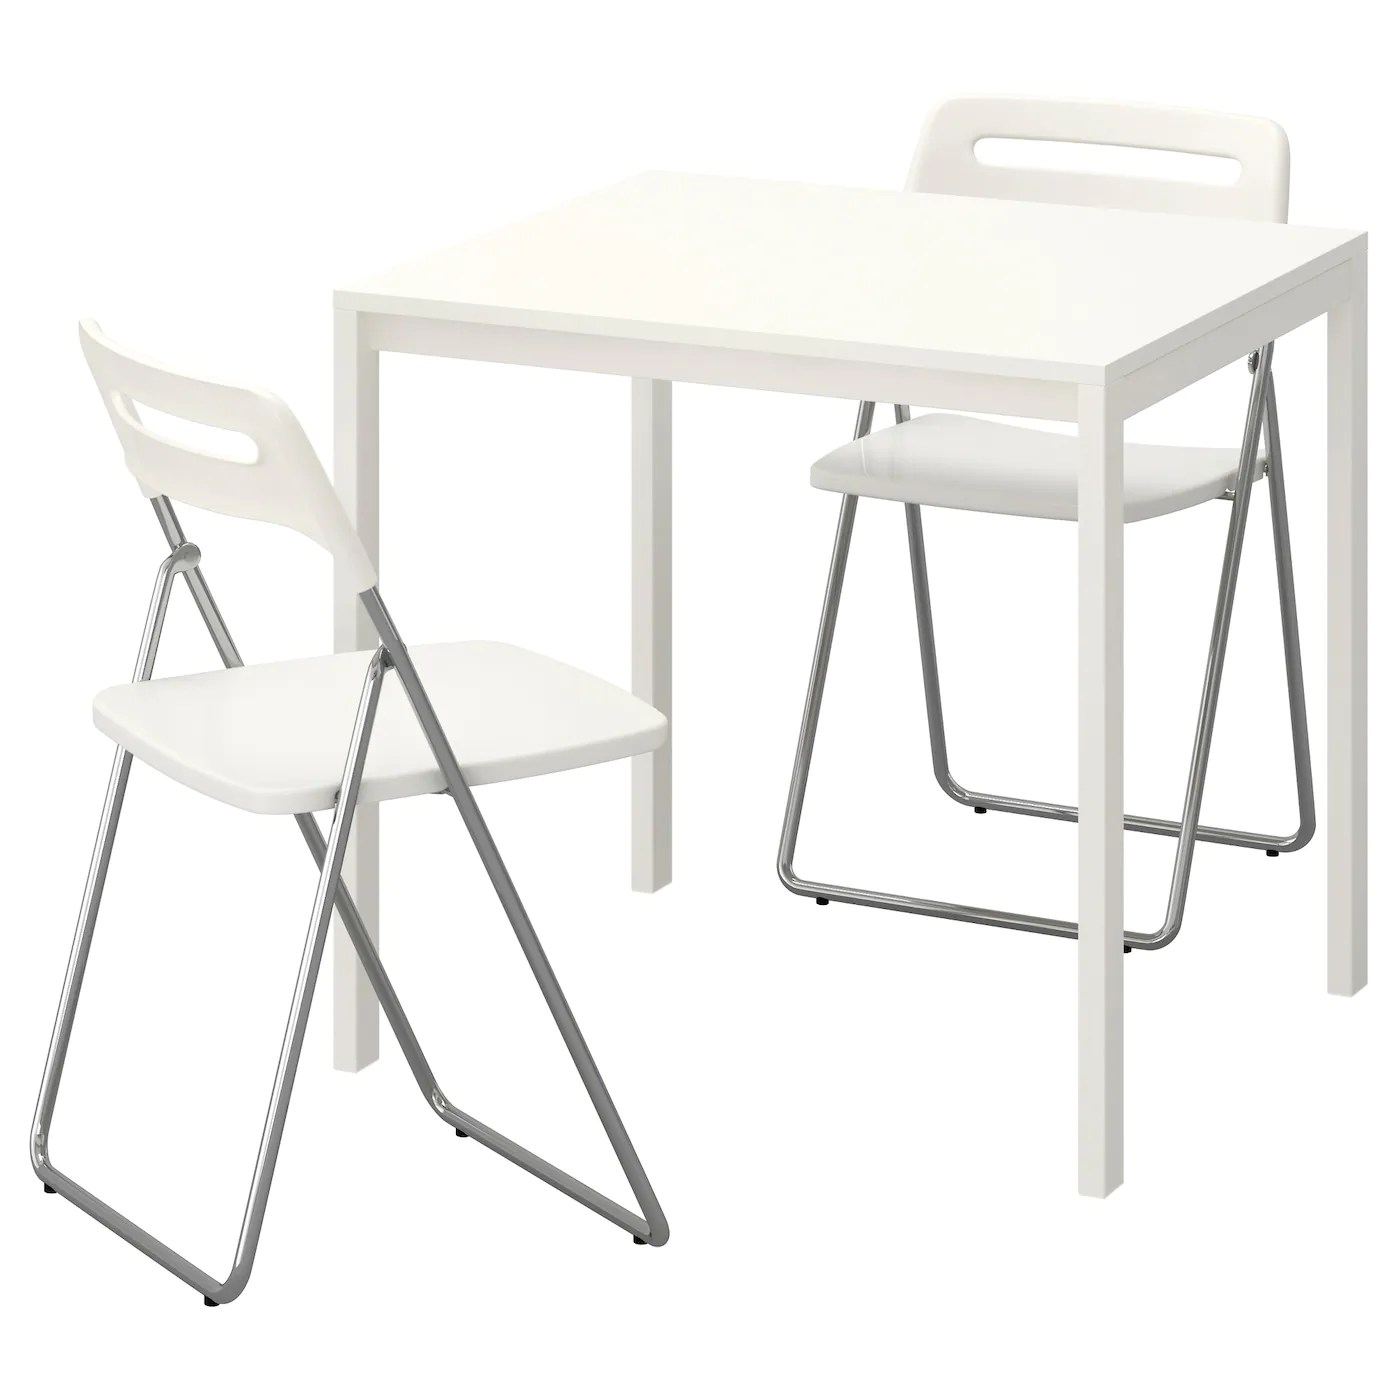 Folding White Chairs Nisse Melltorp Table And 2 Folding Chairs White White 75